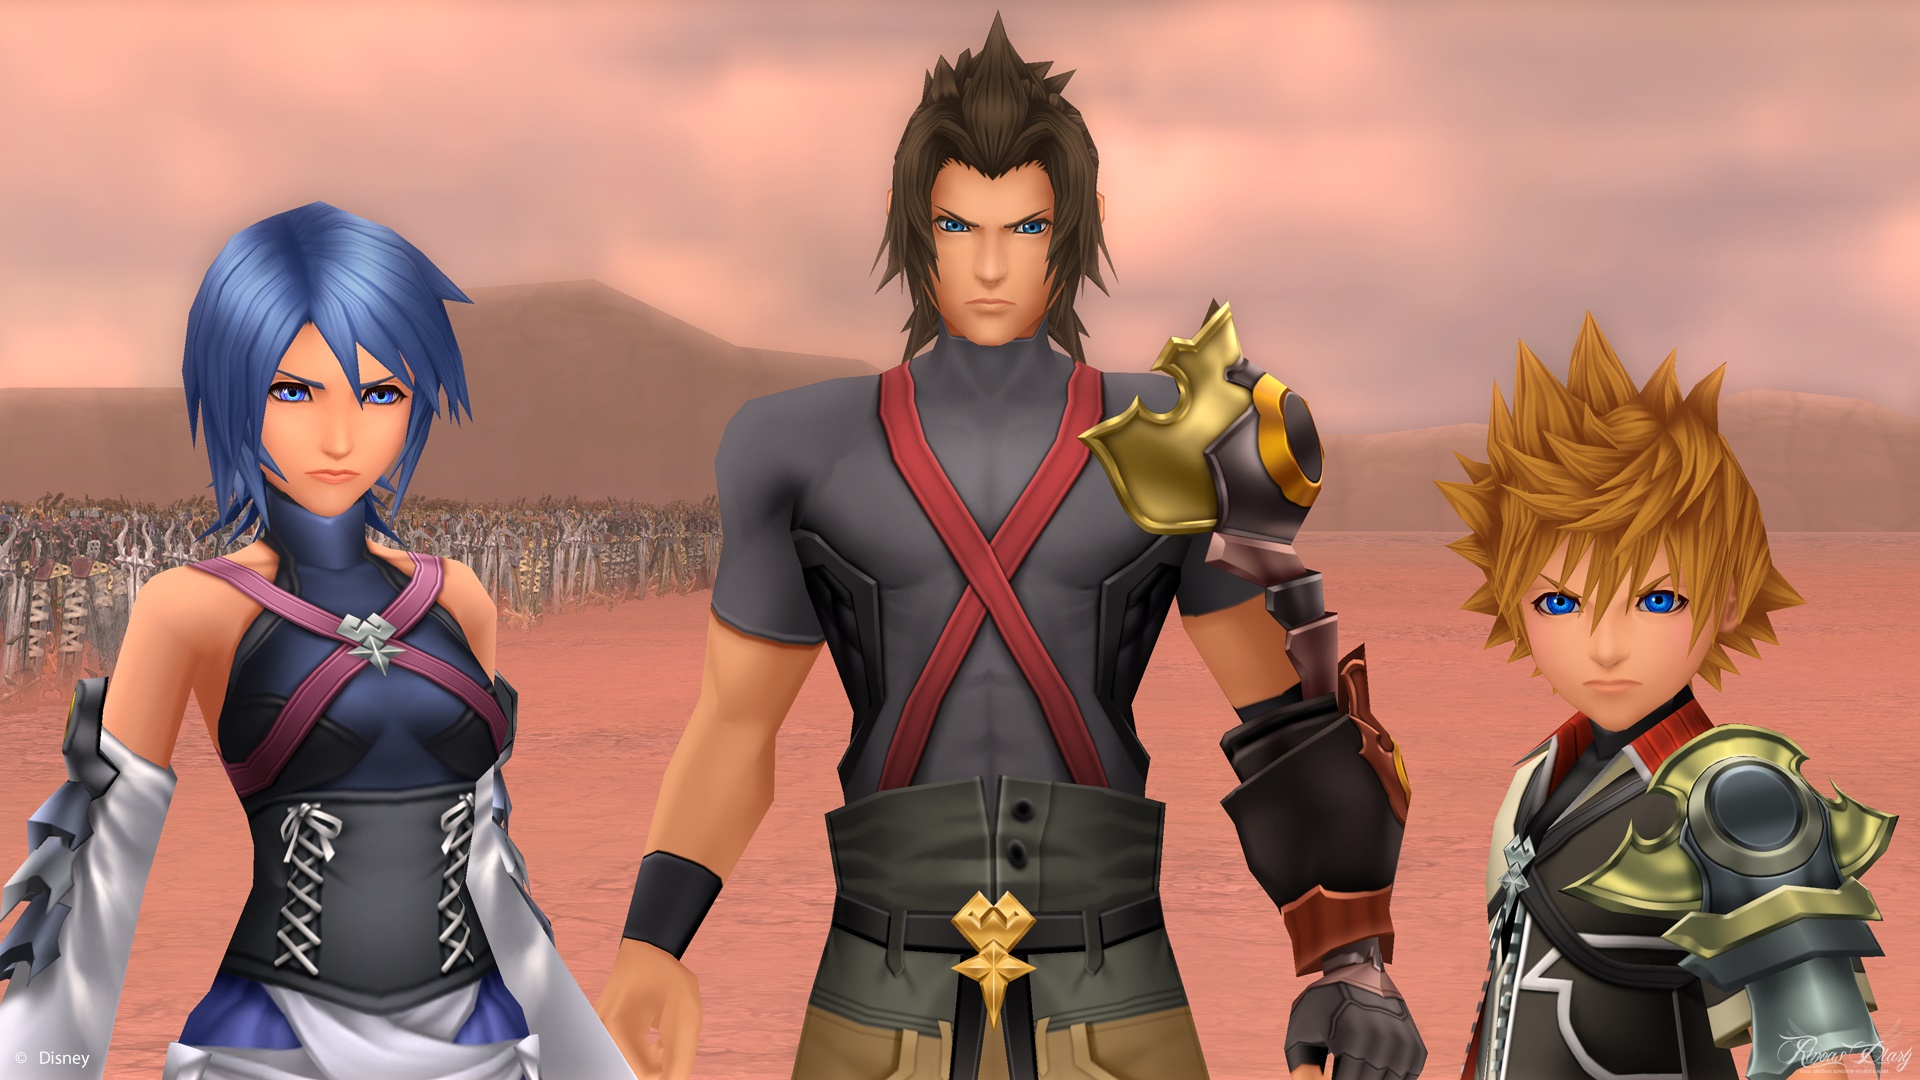 Kingdom Hearts: The Story So Far arriverà in Italia il 29 marzo!